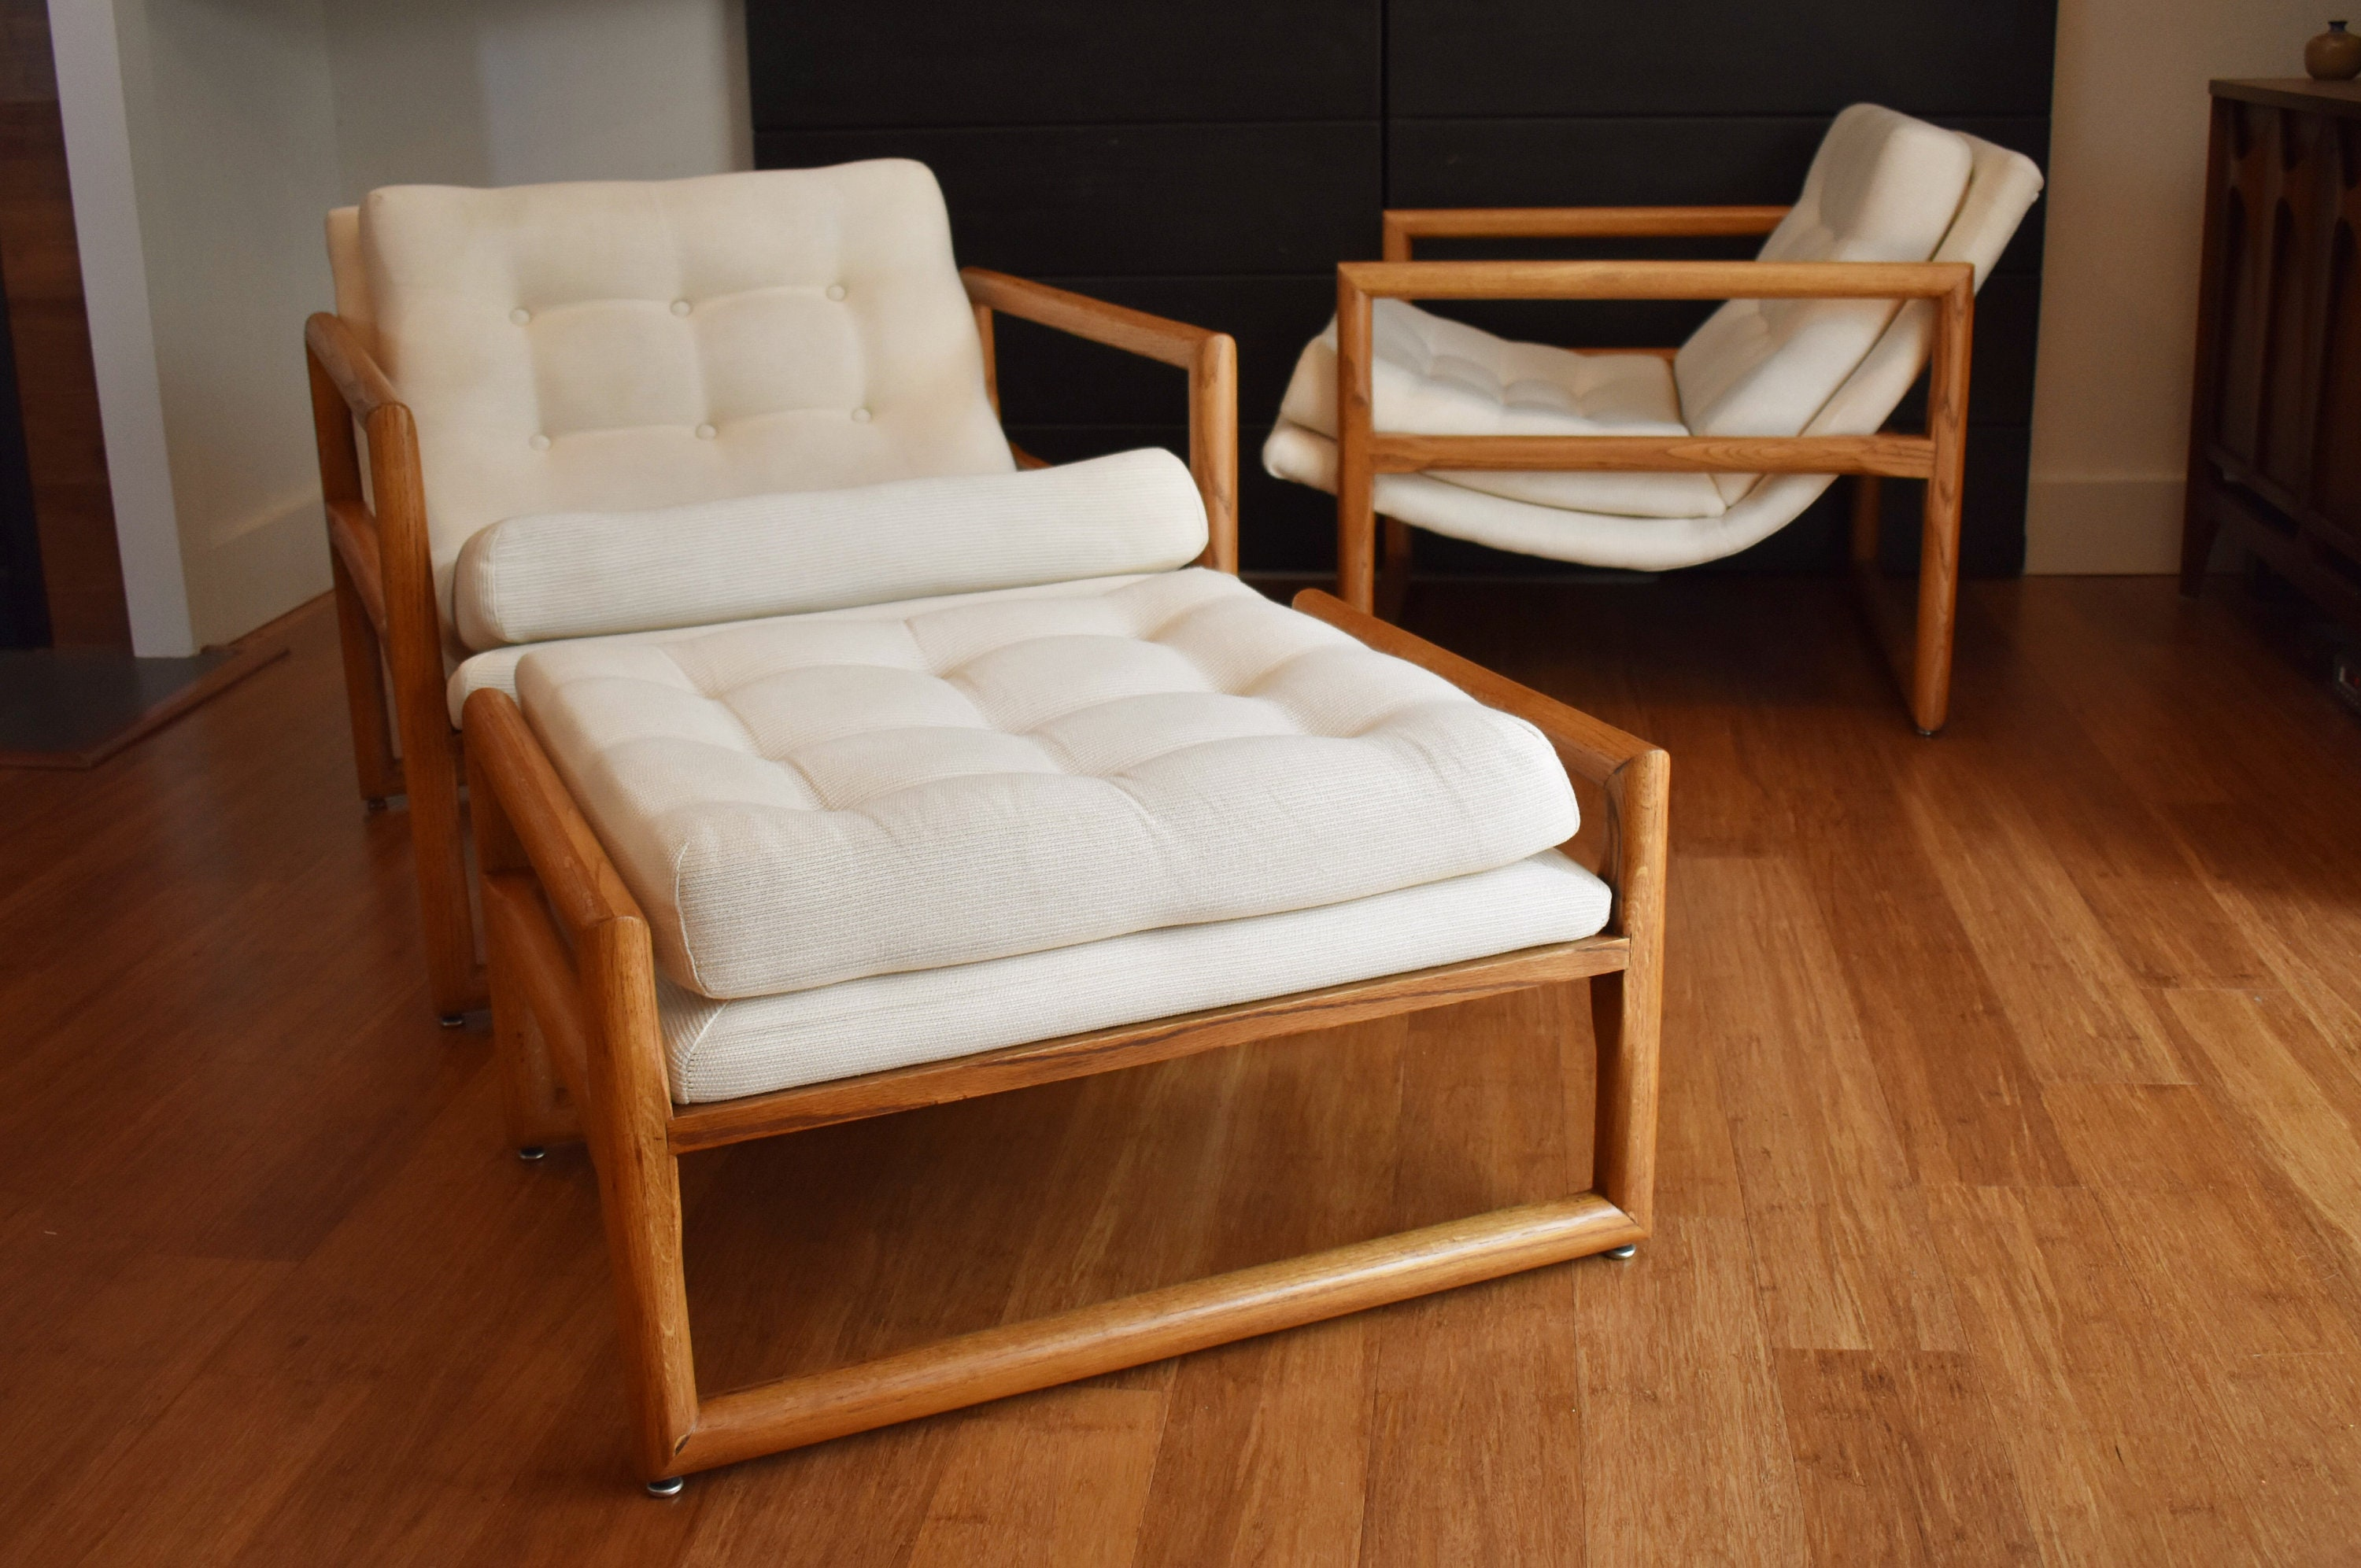 Tremendous Pair Of Milo Baughman For Thayer Coggin Scoop Chairs W Gmtry Best Dining Table And Chair Ideas Images Gmtryco